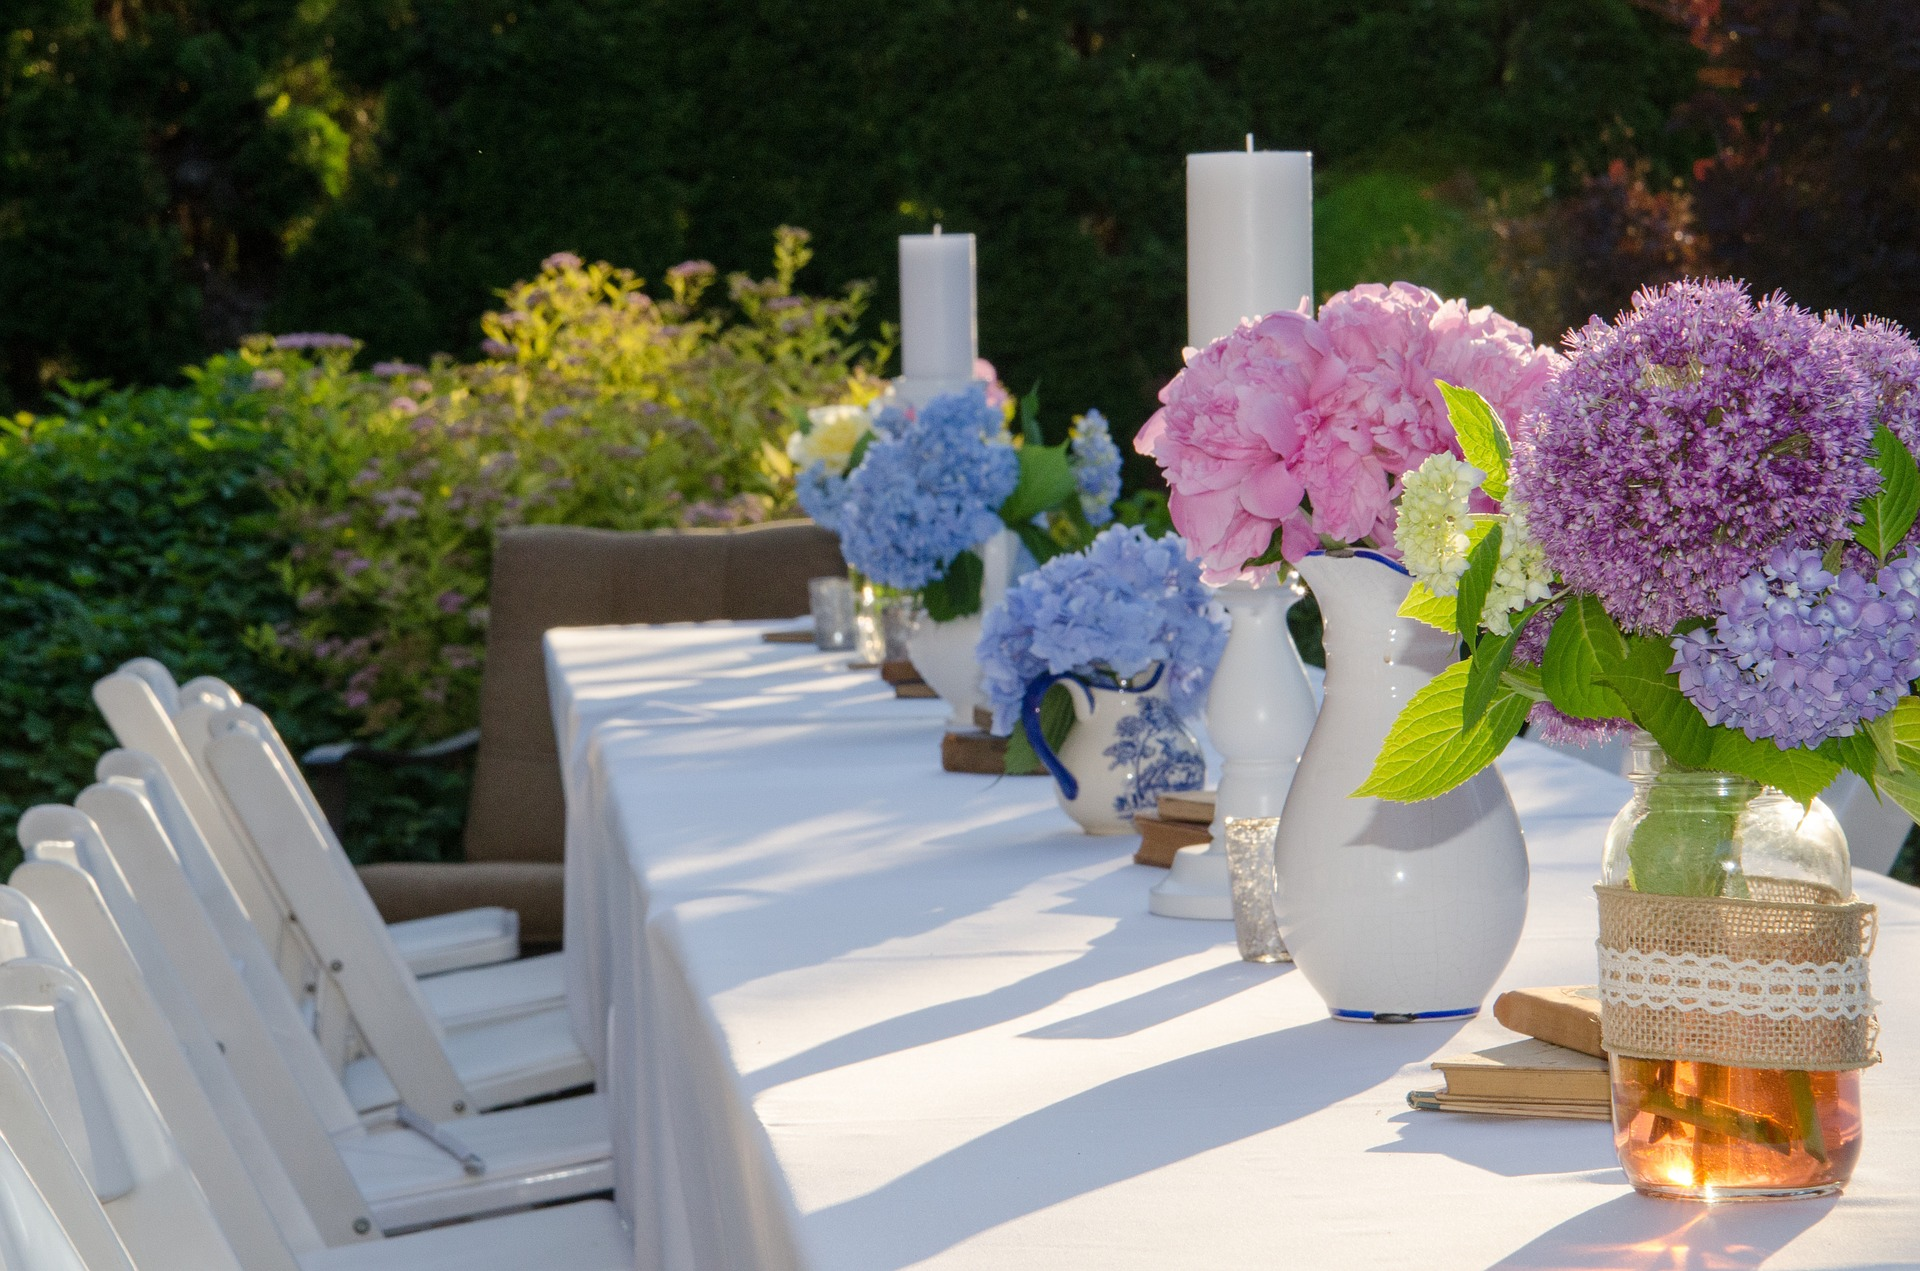 Makeyour outdoor event as beautiful as this with the right planning.